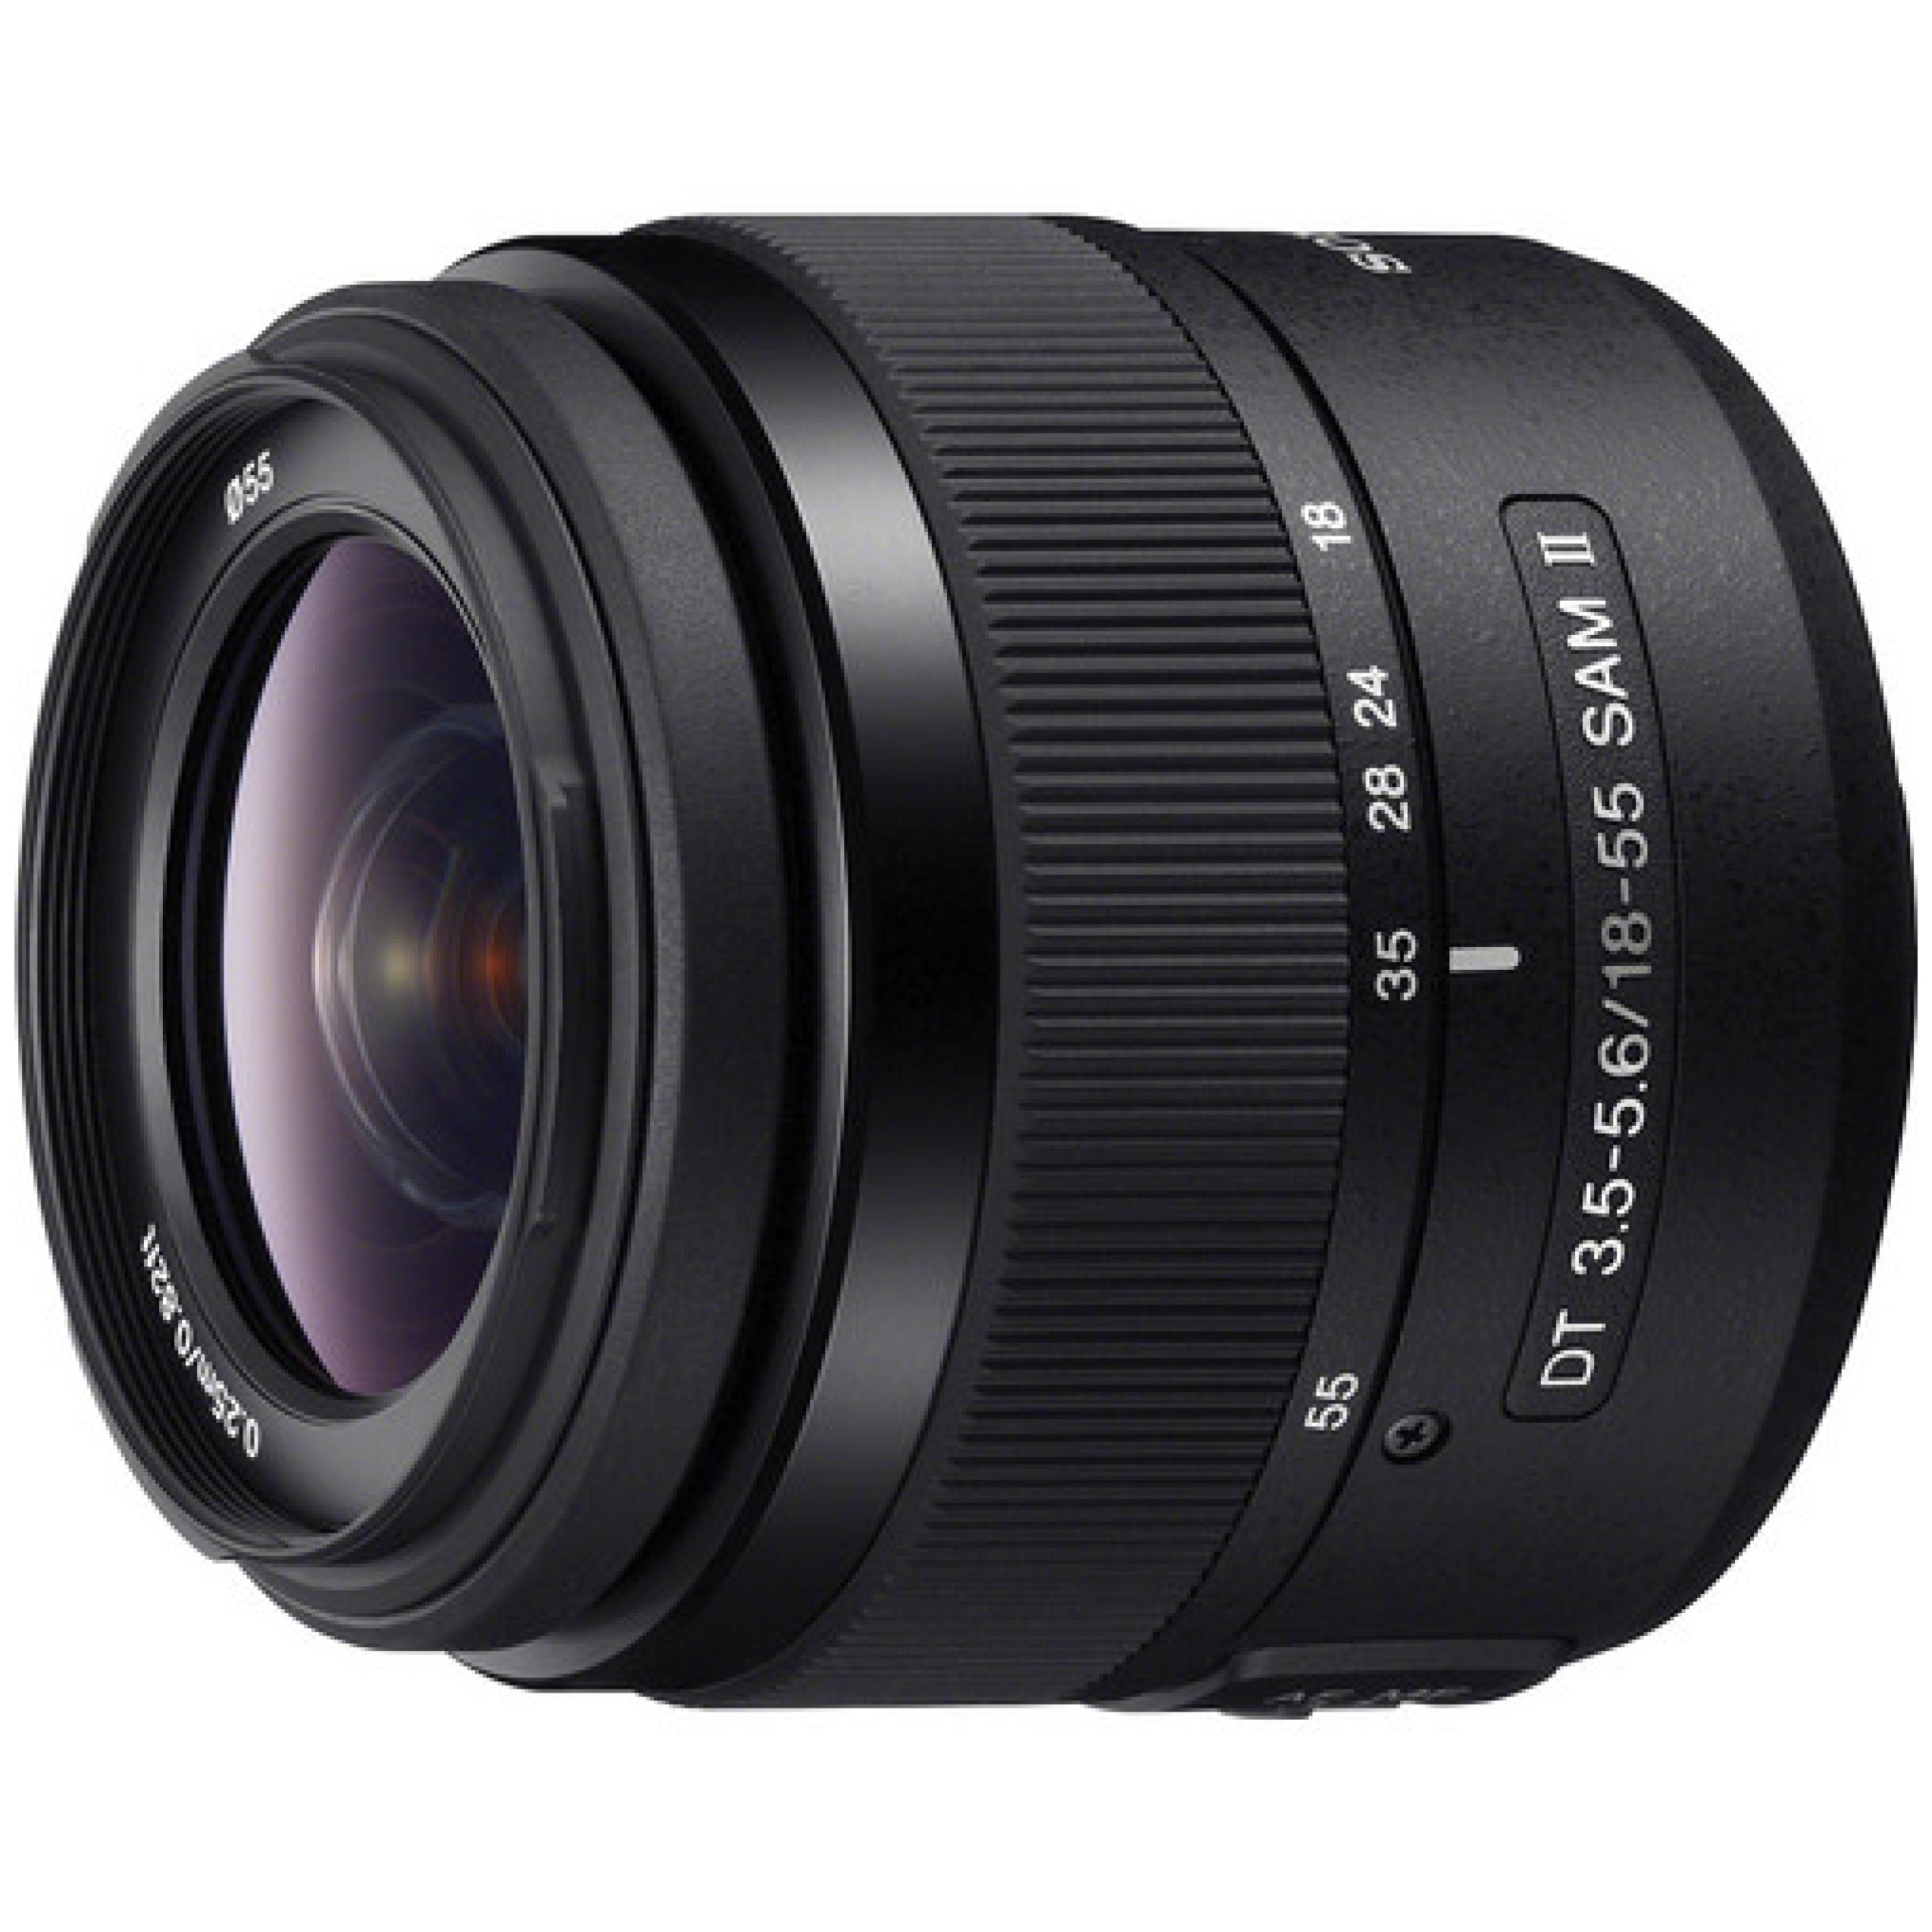 Image for product Sony_DT_1855mm_f3556_SAM_II